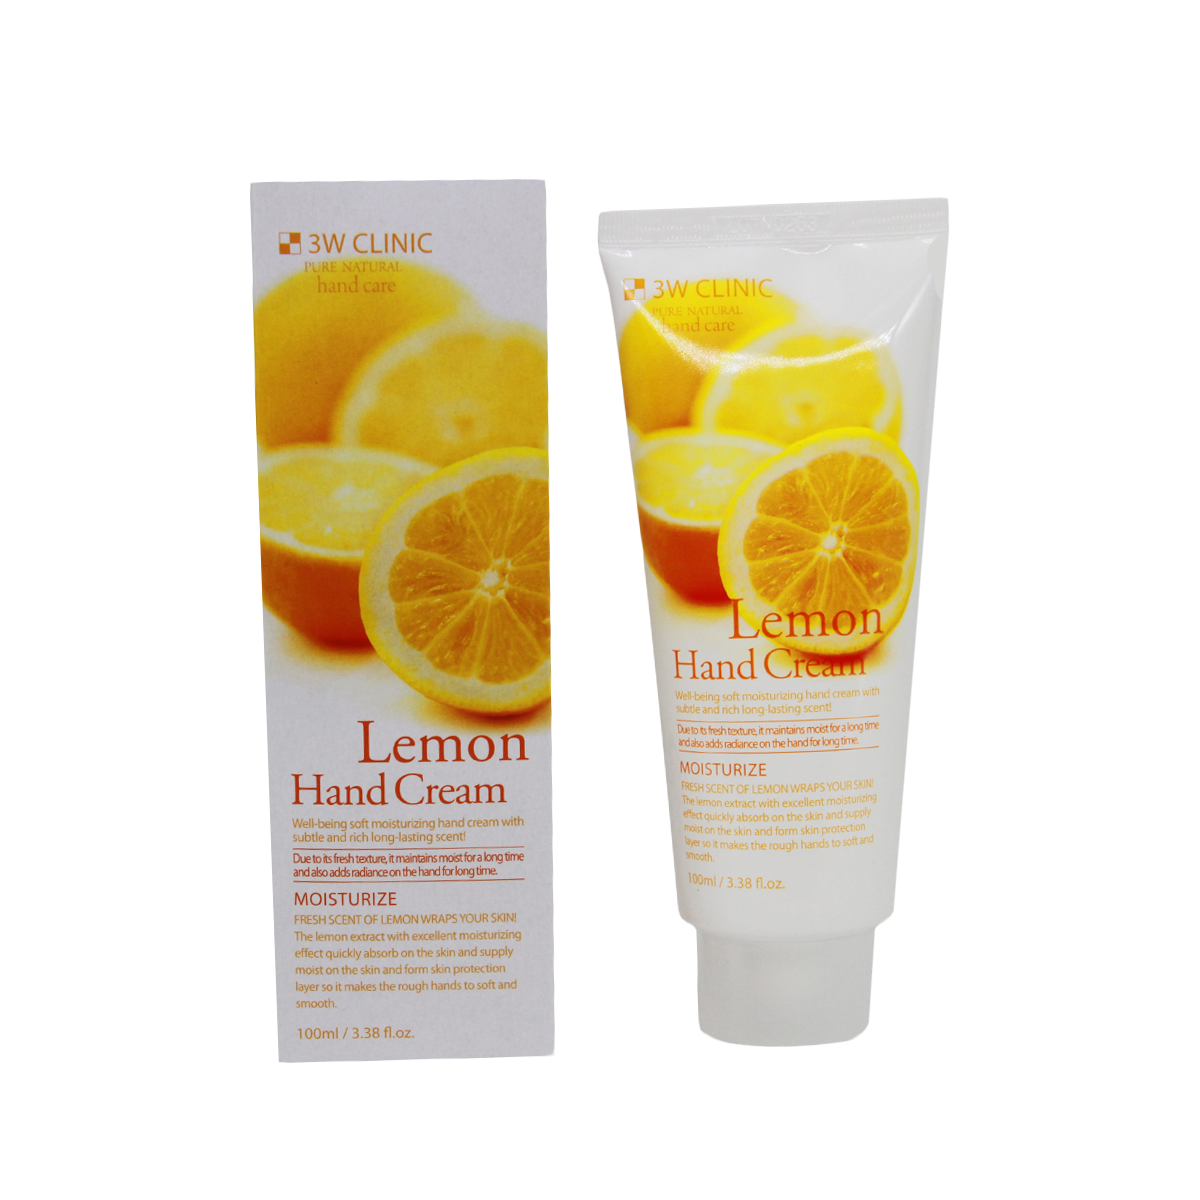 Кремы для рук и ног Крем для рук 3W Clinic Lemon Moisture Hand Cream, 100 мл import_files_5f_5fdfc3f15a4e11e980fb3408042974b1_ba1af1c85c7011e980fb3408042974b1.png